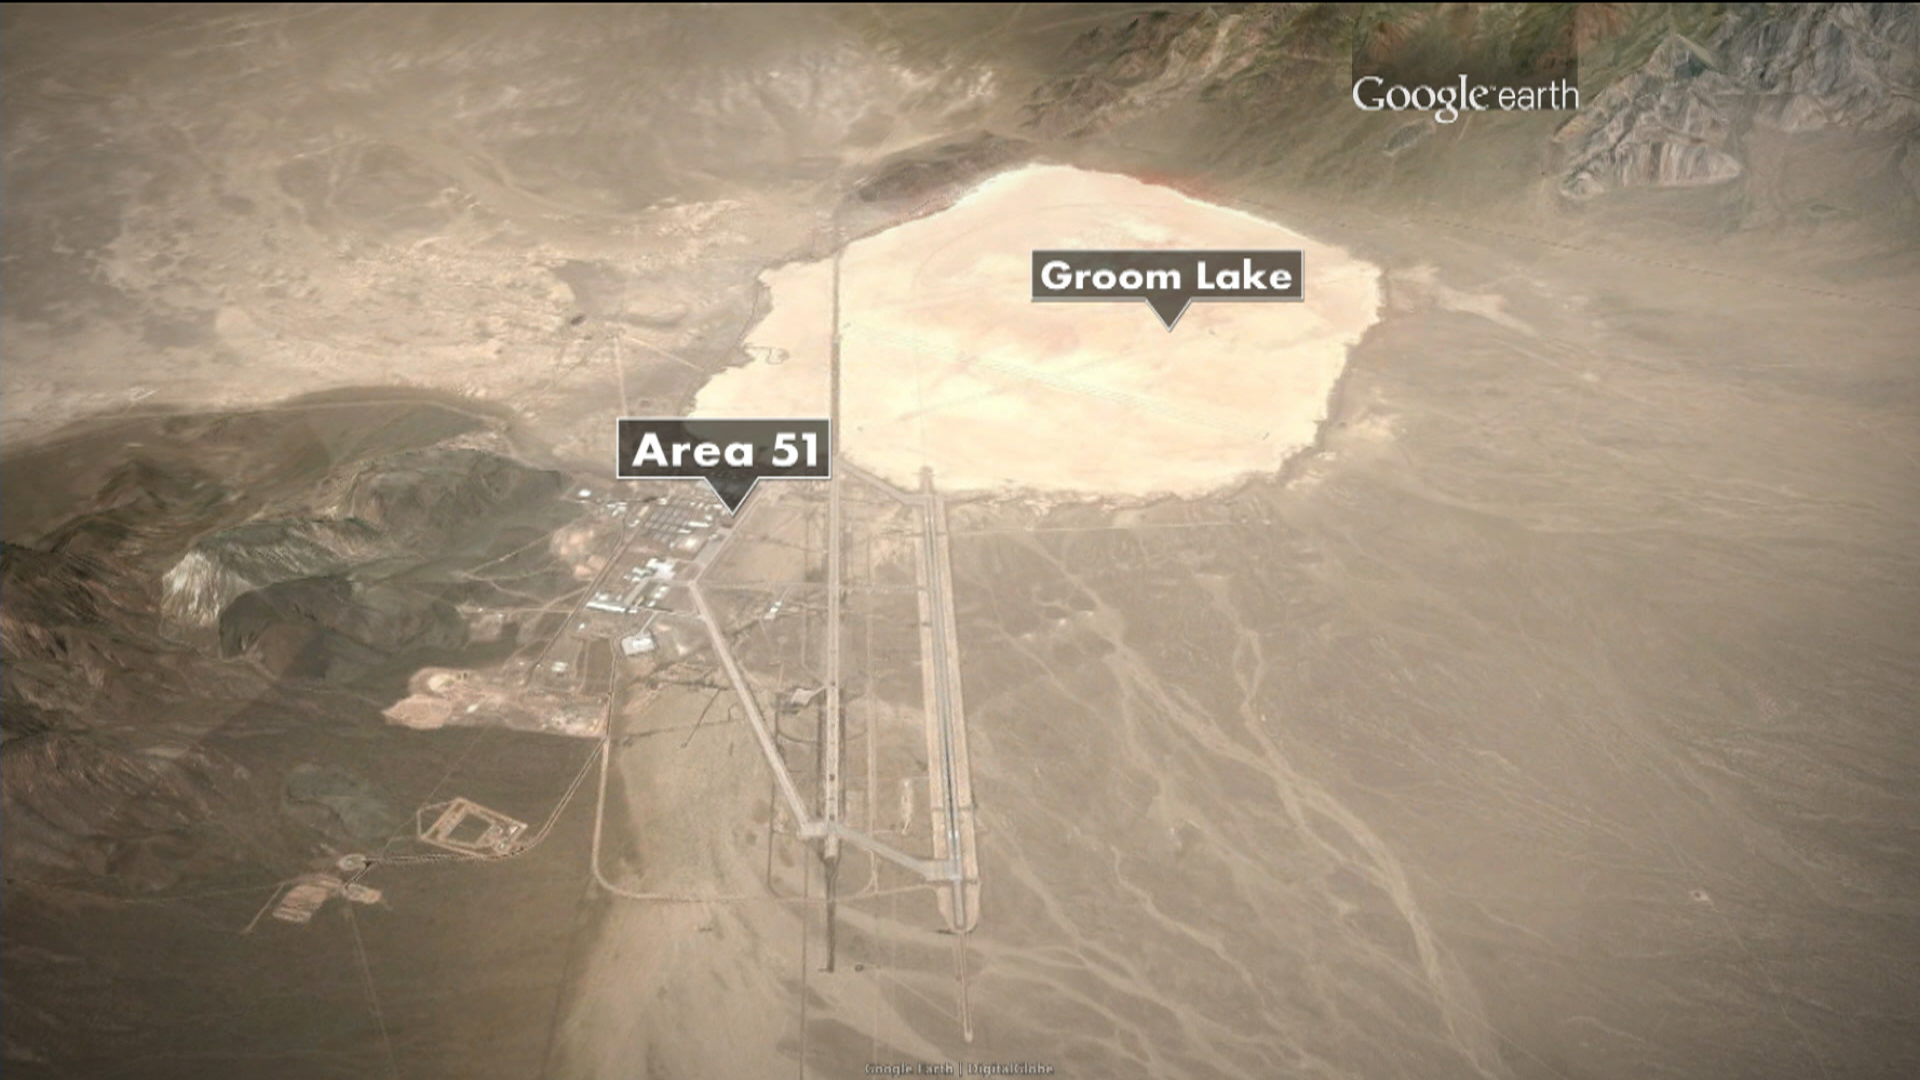 Area 51 and its purpose declassified: No UFOs, but lots of U-2 spy planes